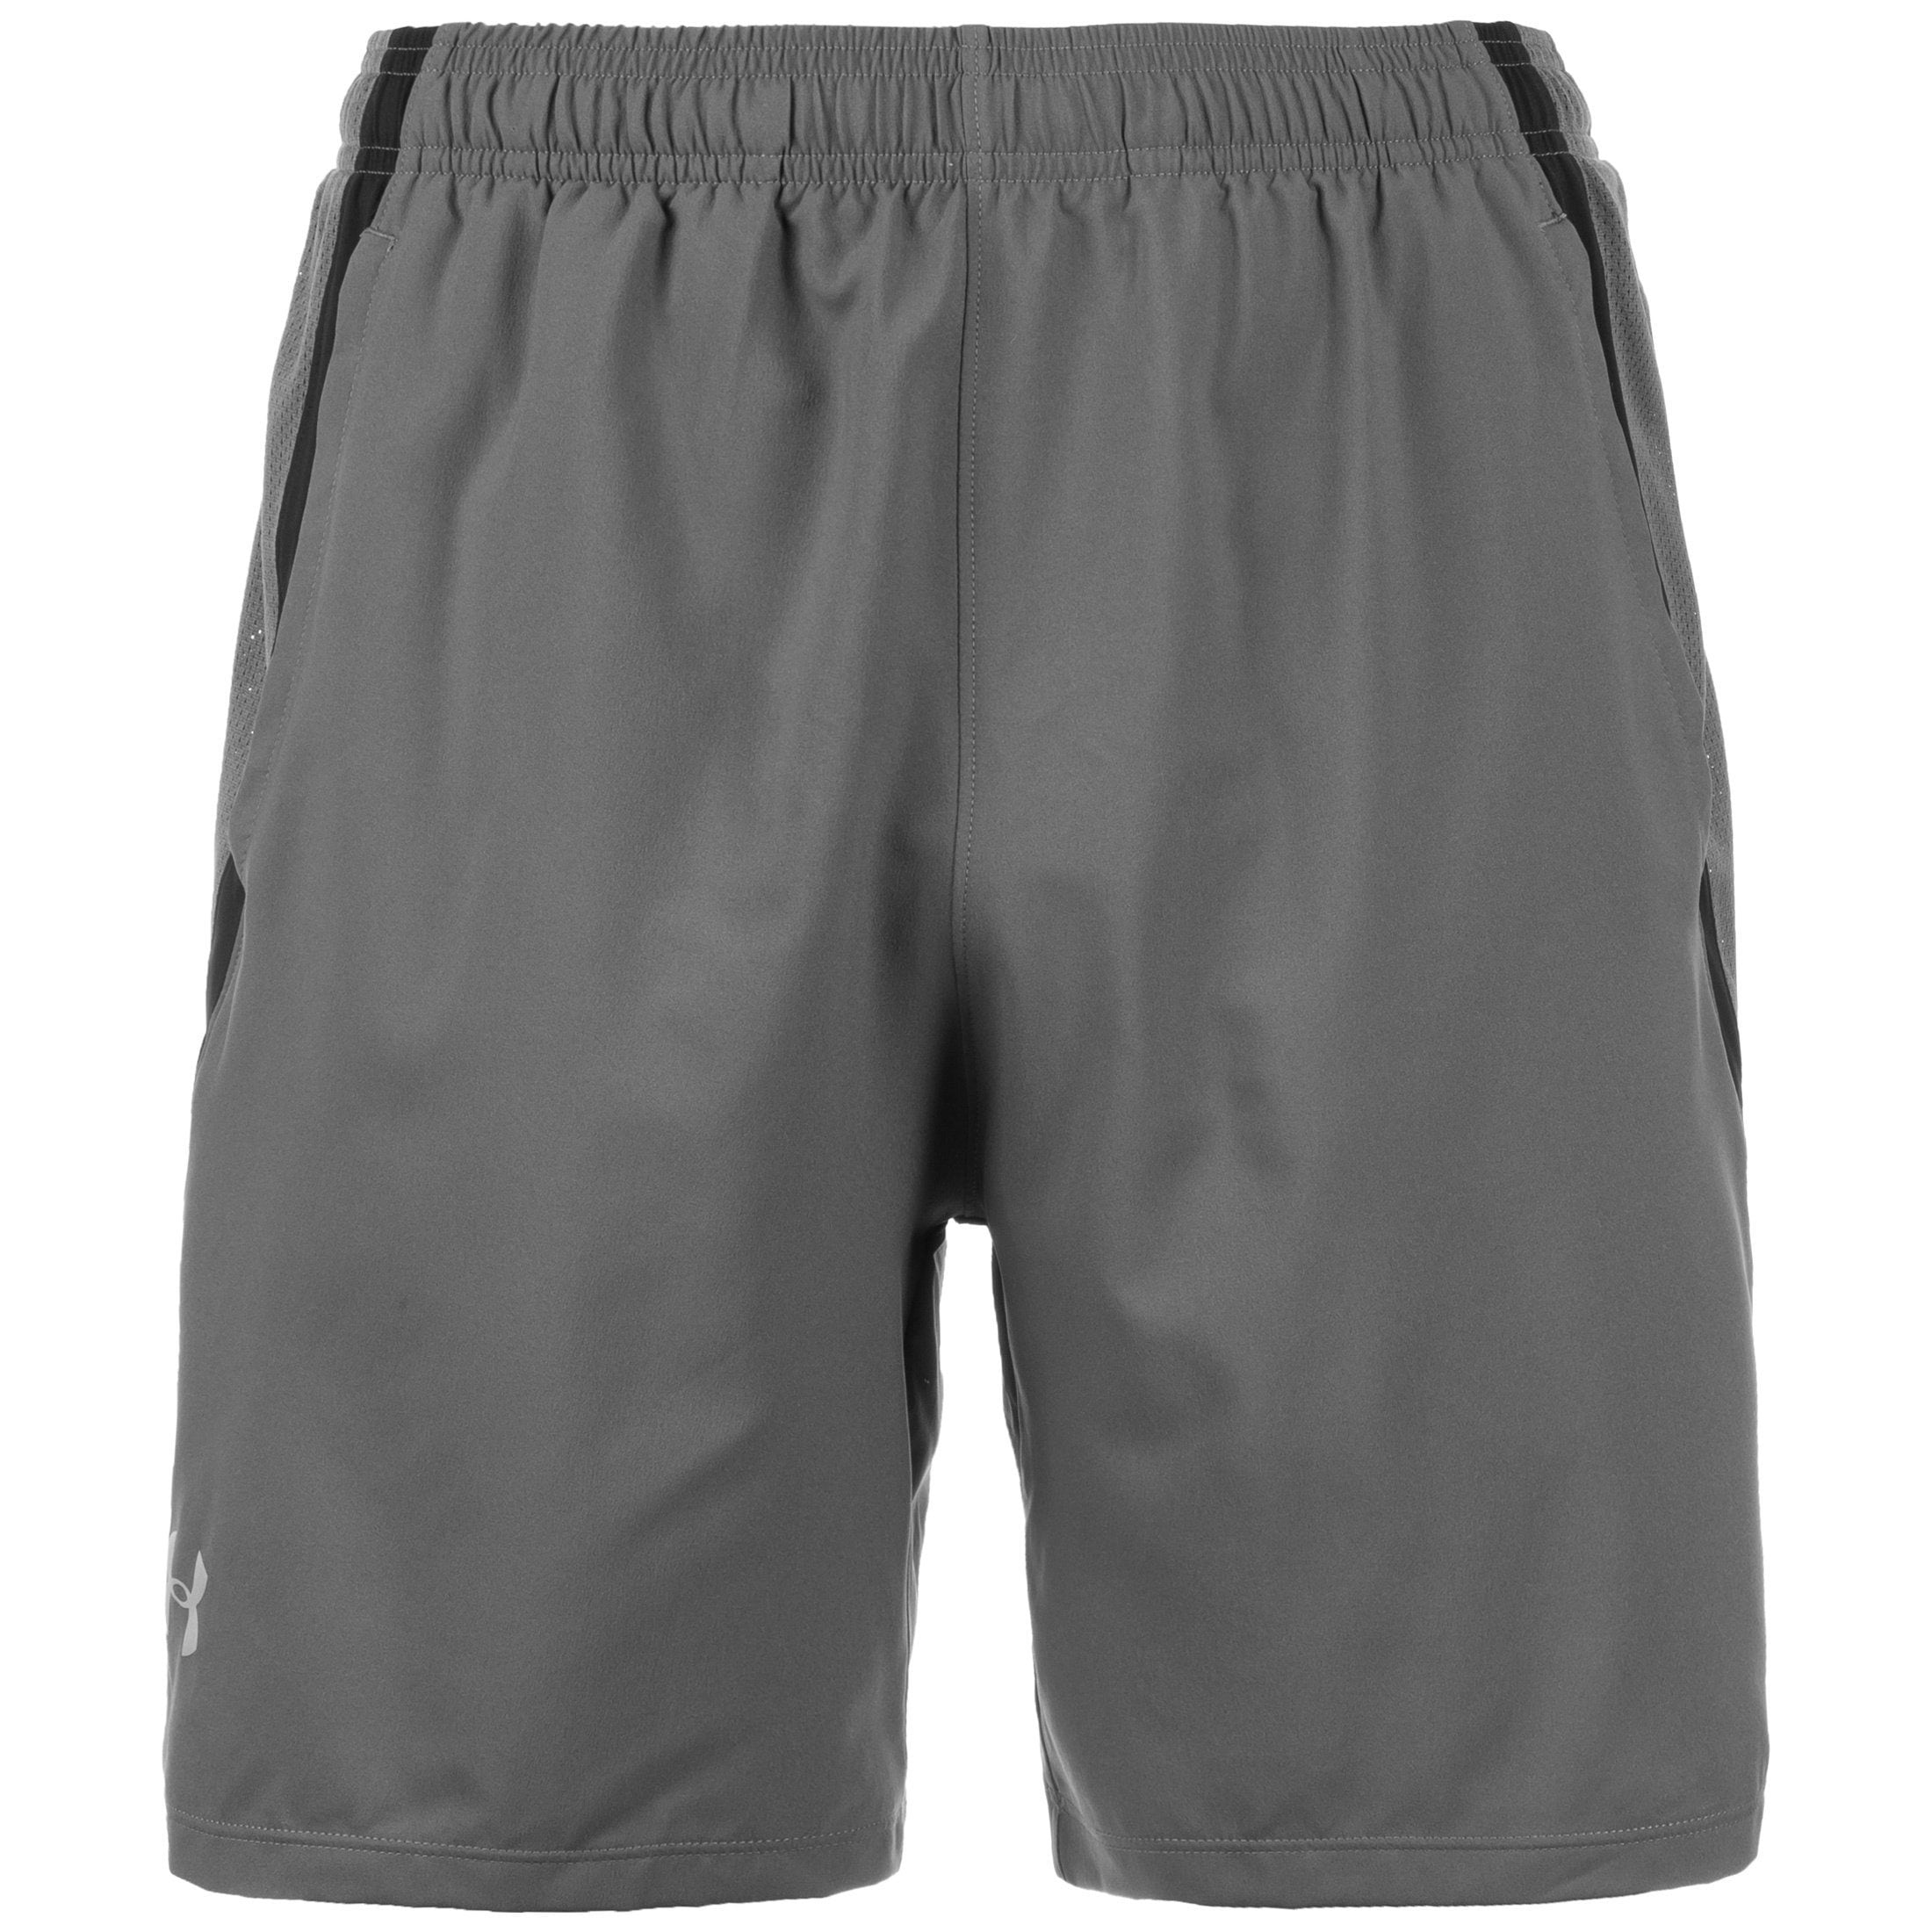 Under Armour Laufshorts Launch 7 Inch | Sportbekleidung > Sporthosen > Laufhosen | Grau | Under Armour